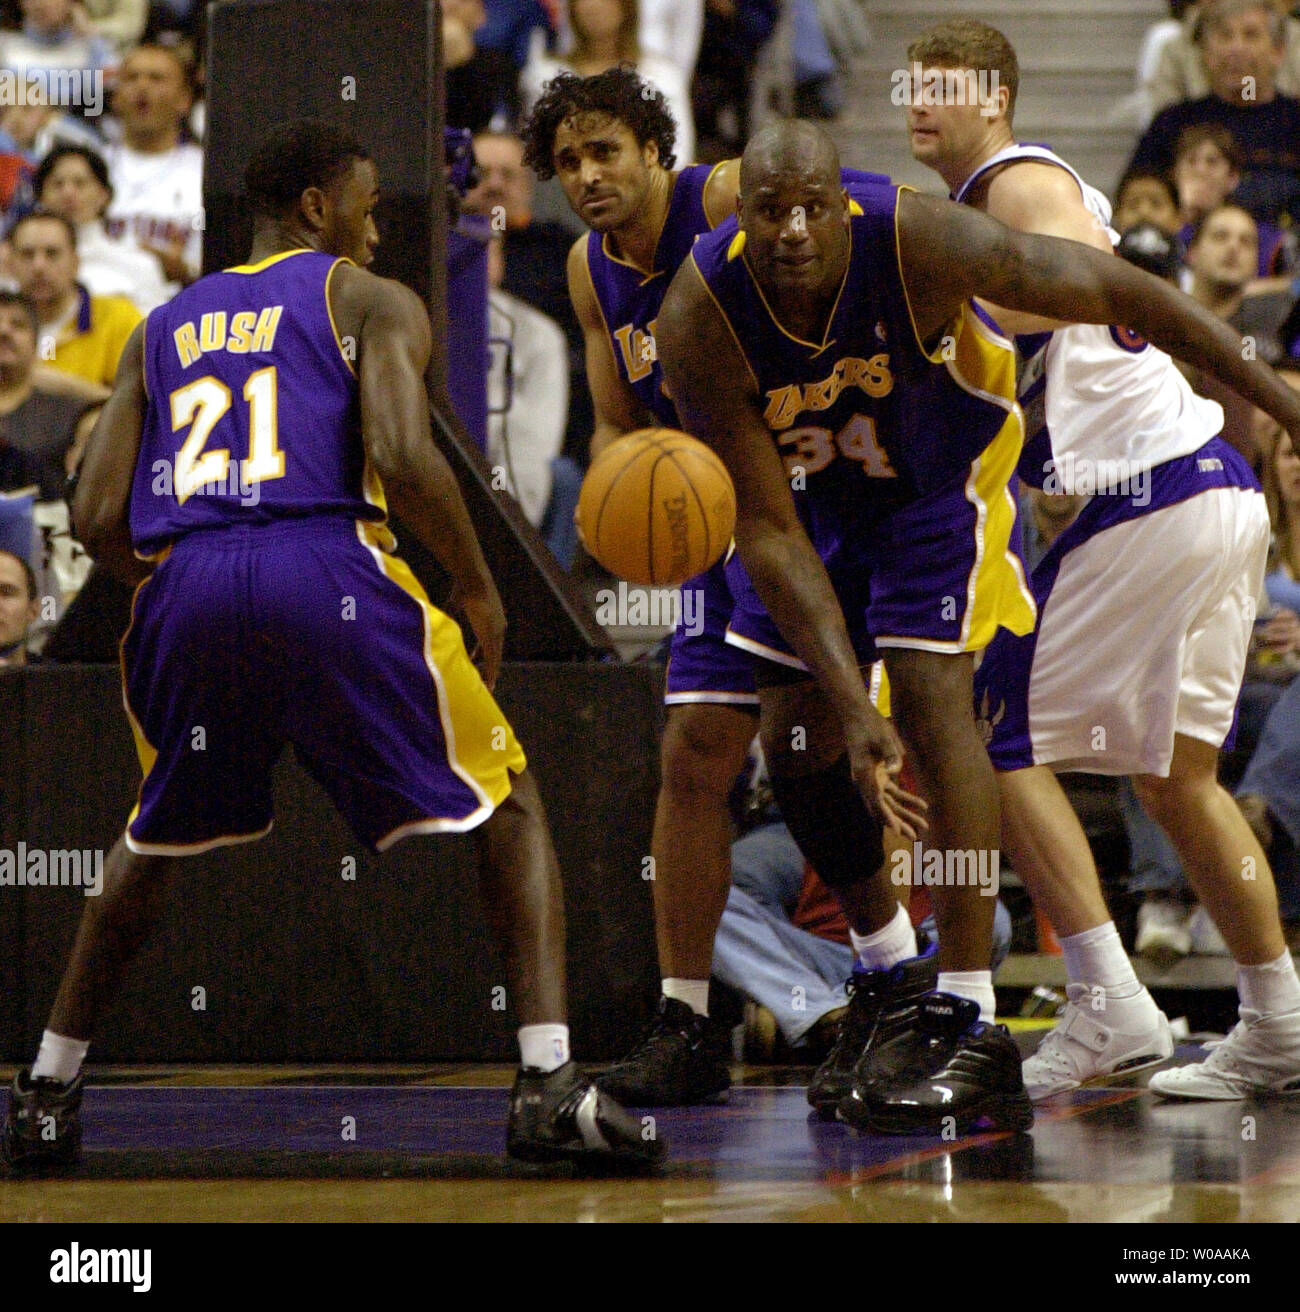 Framed Kobe Bryant 81 Points Los Angeles Lakers Action Photo Size: 12 x 15